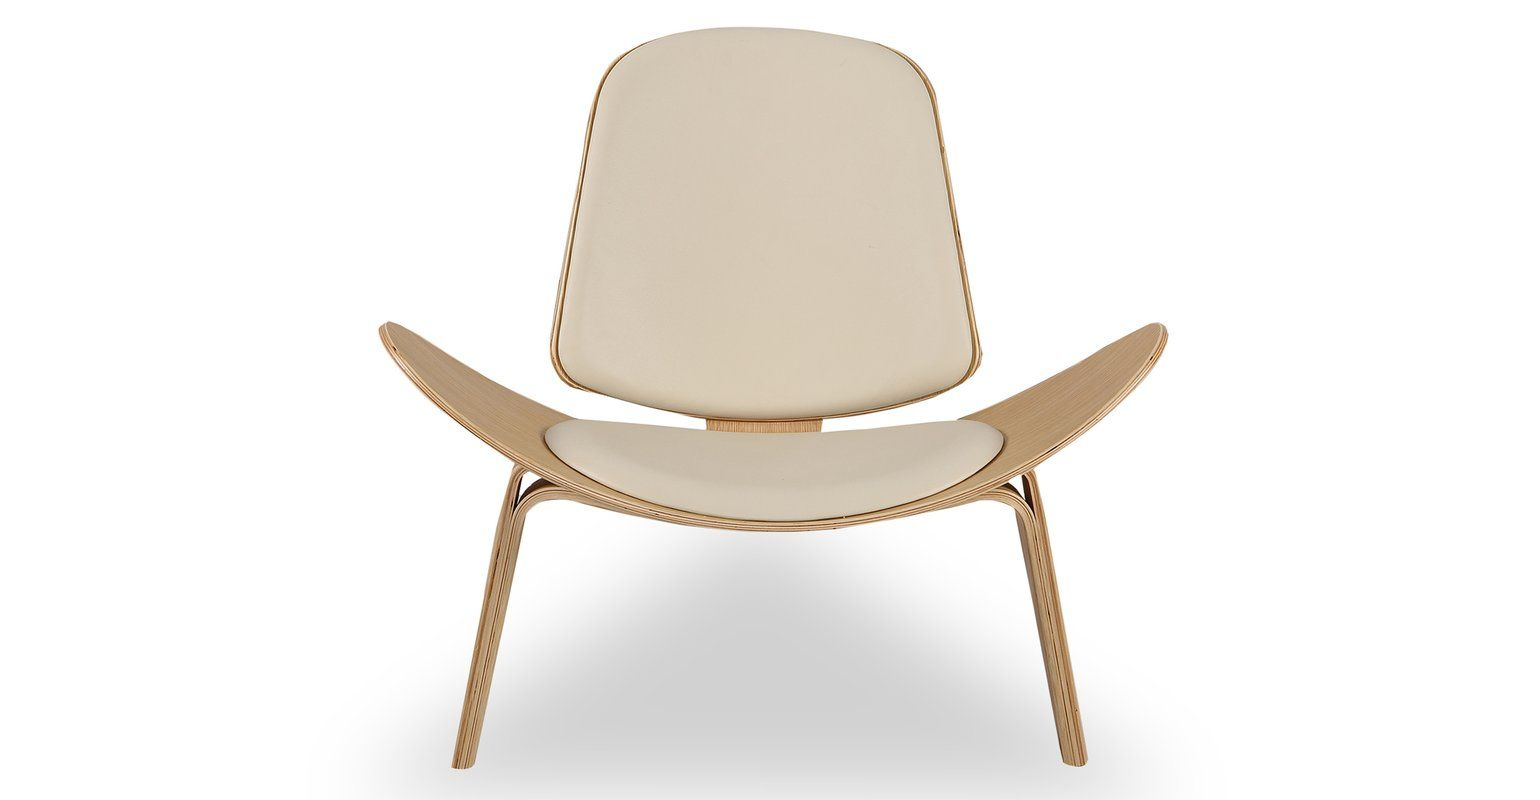 Groovy Lounge Chair All Things New Chair Plywood Chair Andrewgaddart Wooden Chair Designs For Living Room Andrewgaddartcom